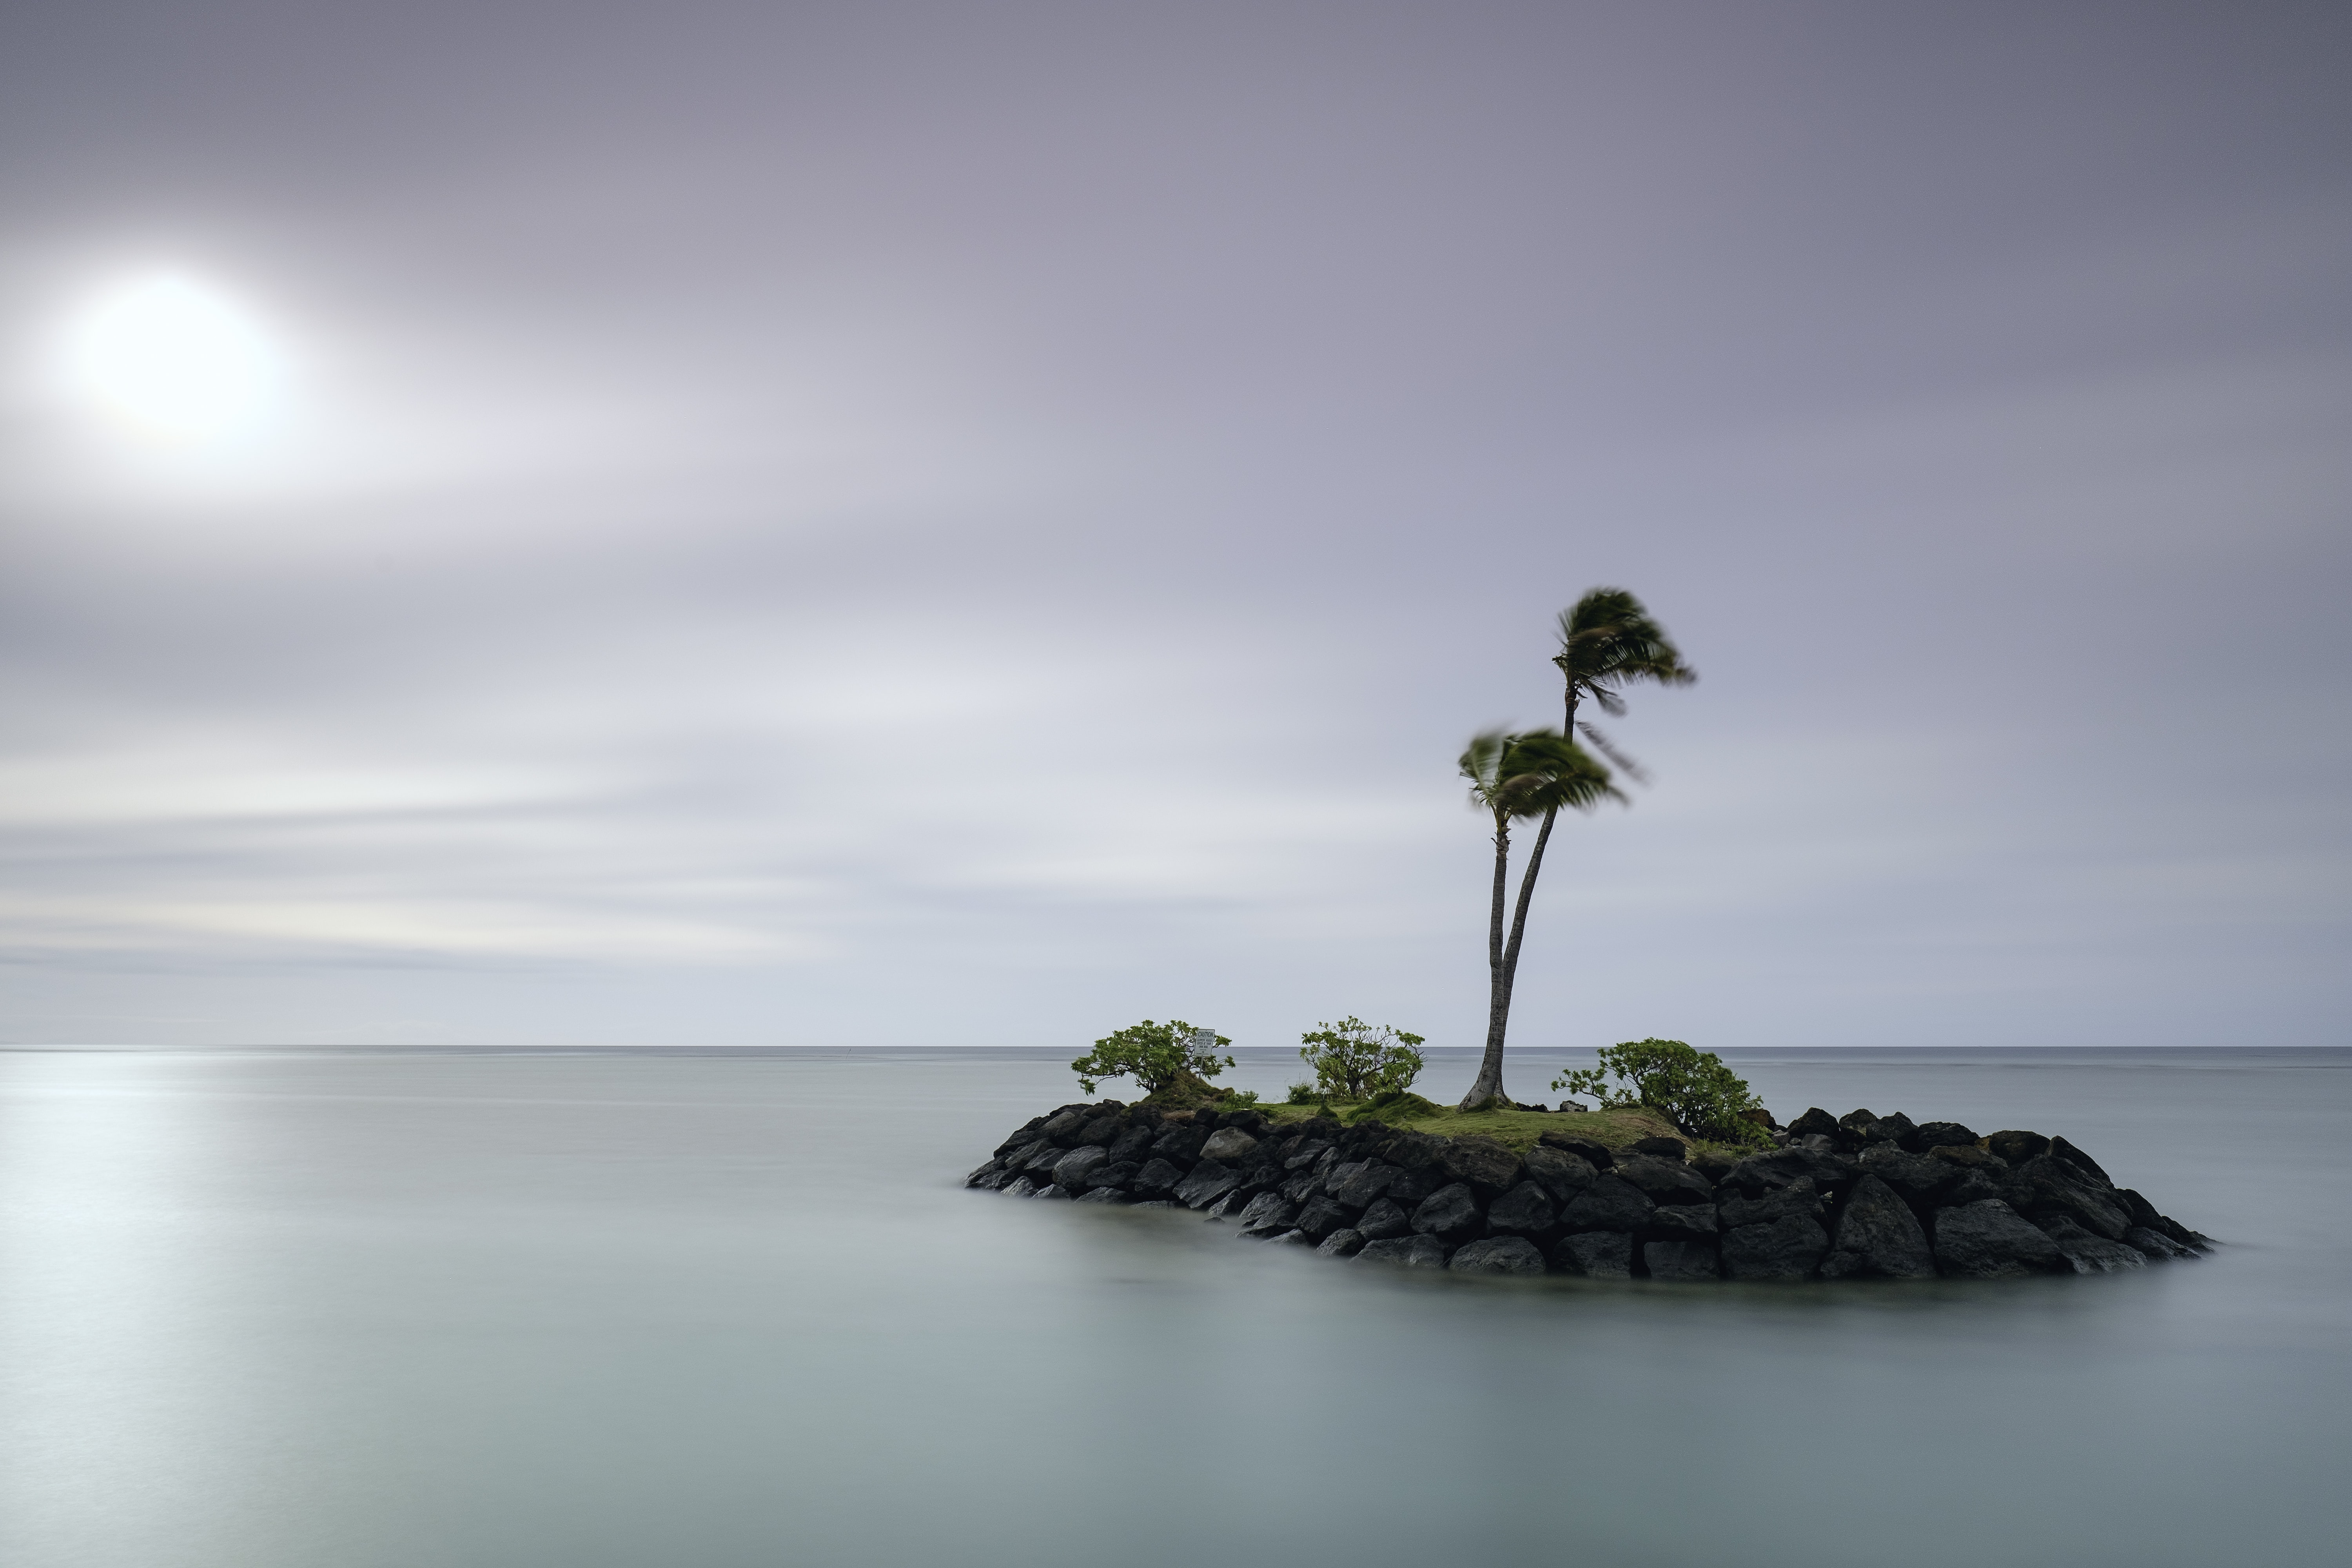 green coconut tree on island at daytime